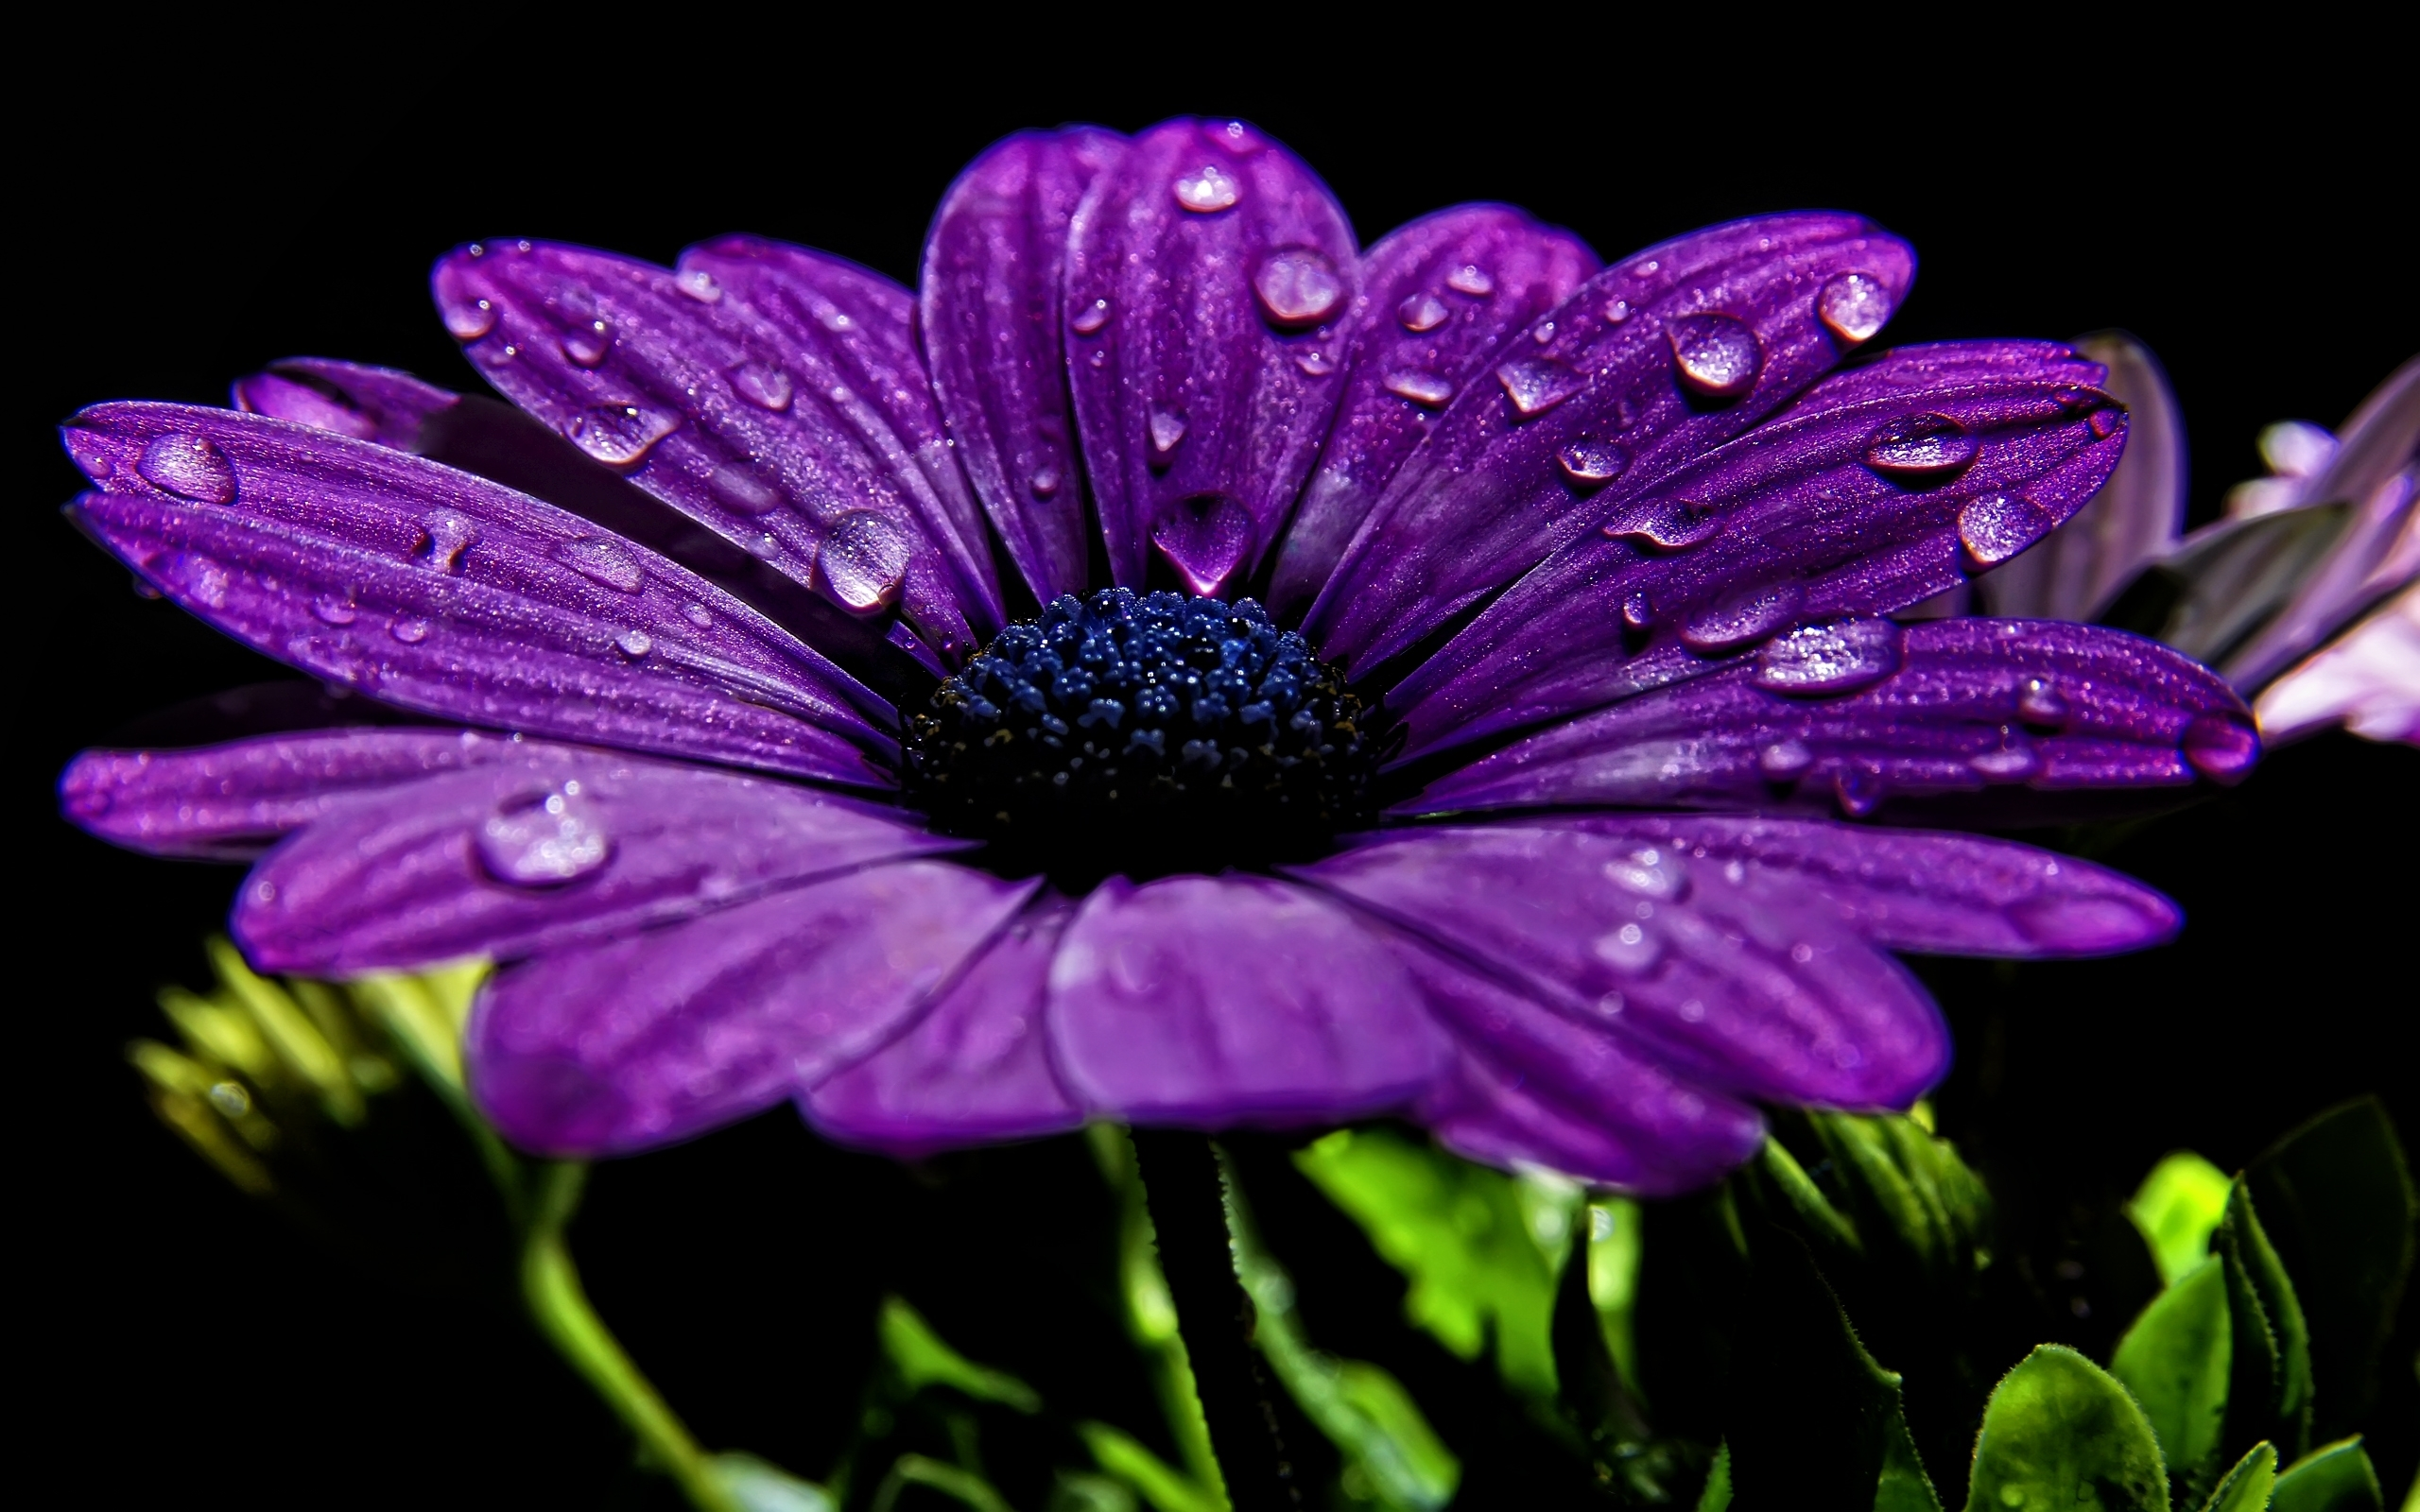 purple flowers 14034 2560x1600 px ~ hdwallsource